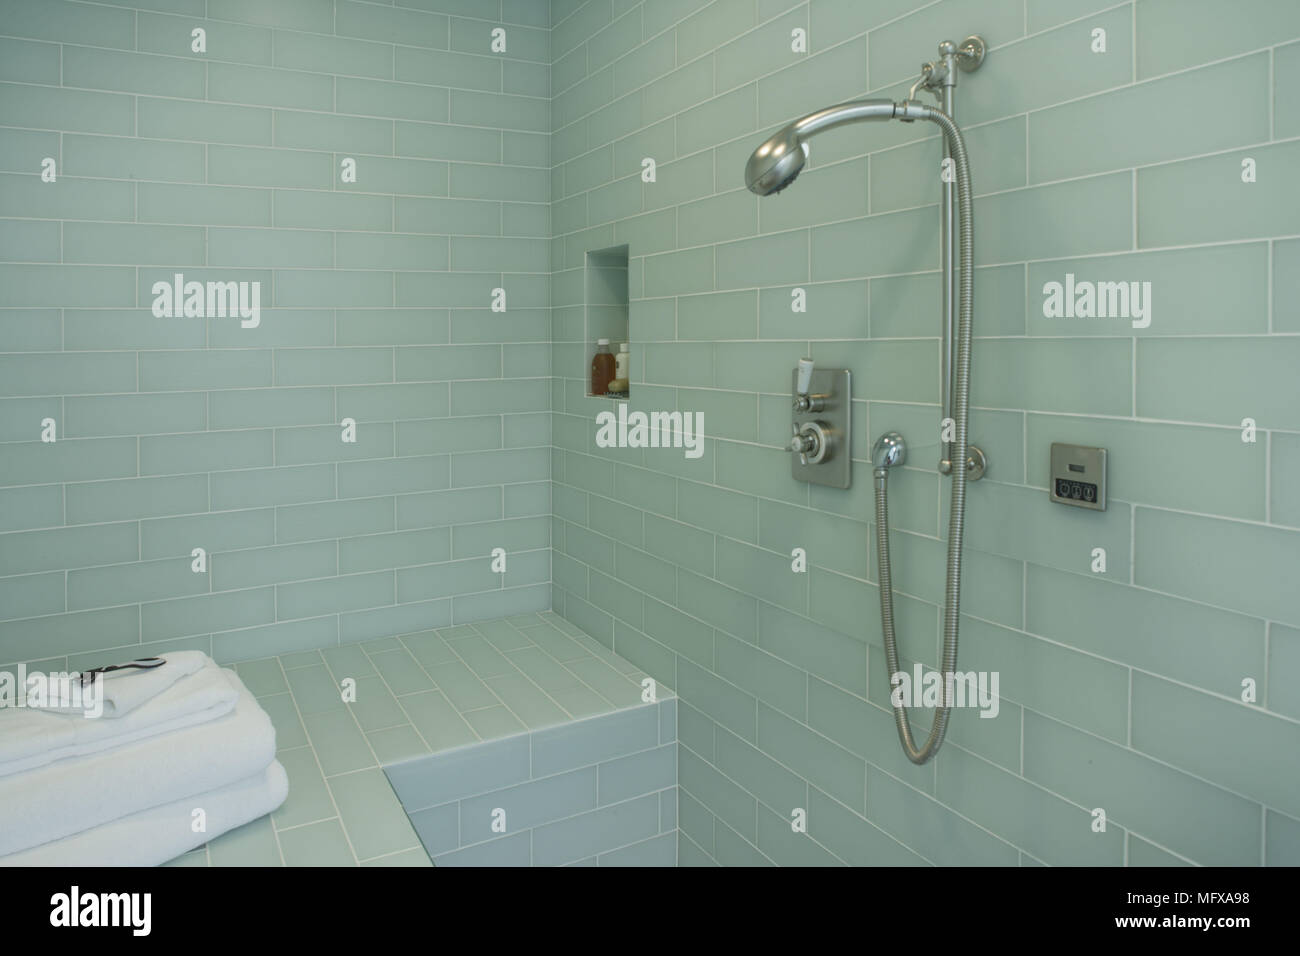 Tiled Shower Area Stock Photos & Tiled Shower Area Stock Images - Alamy